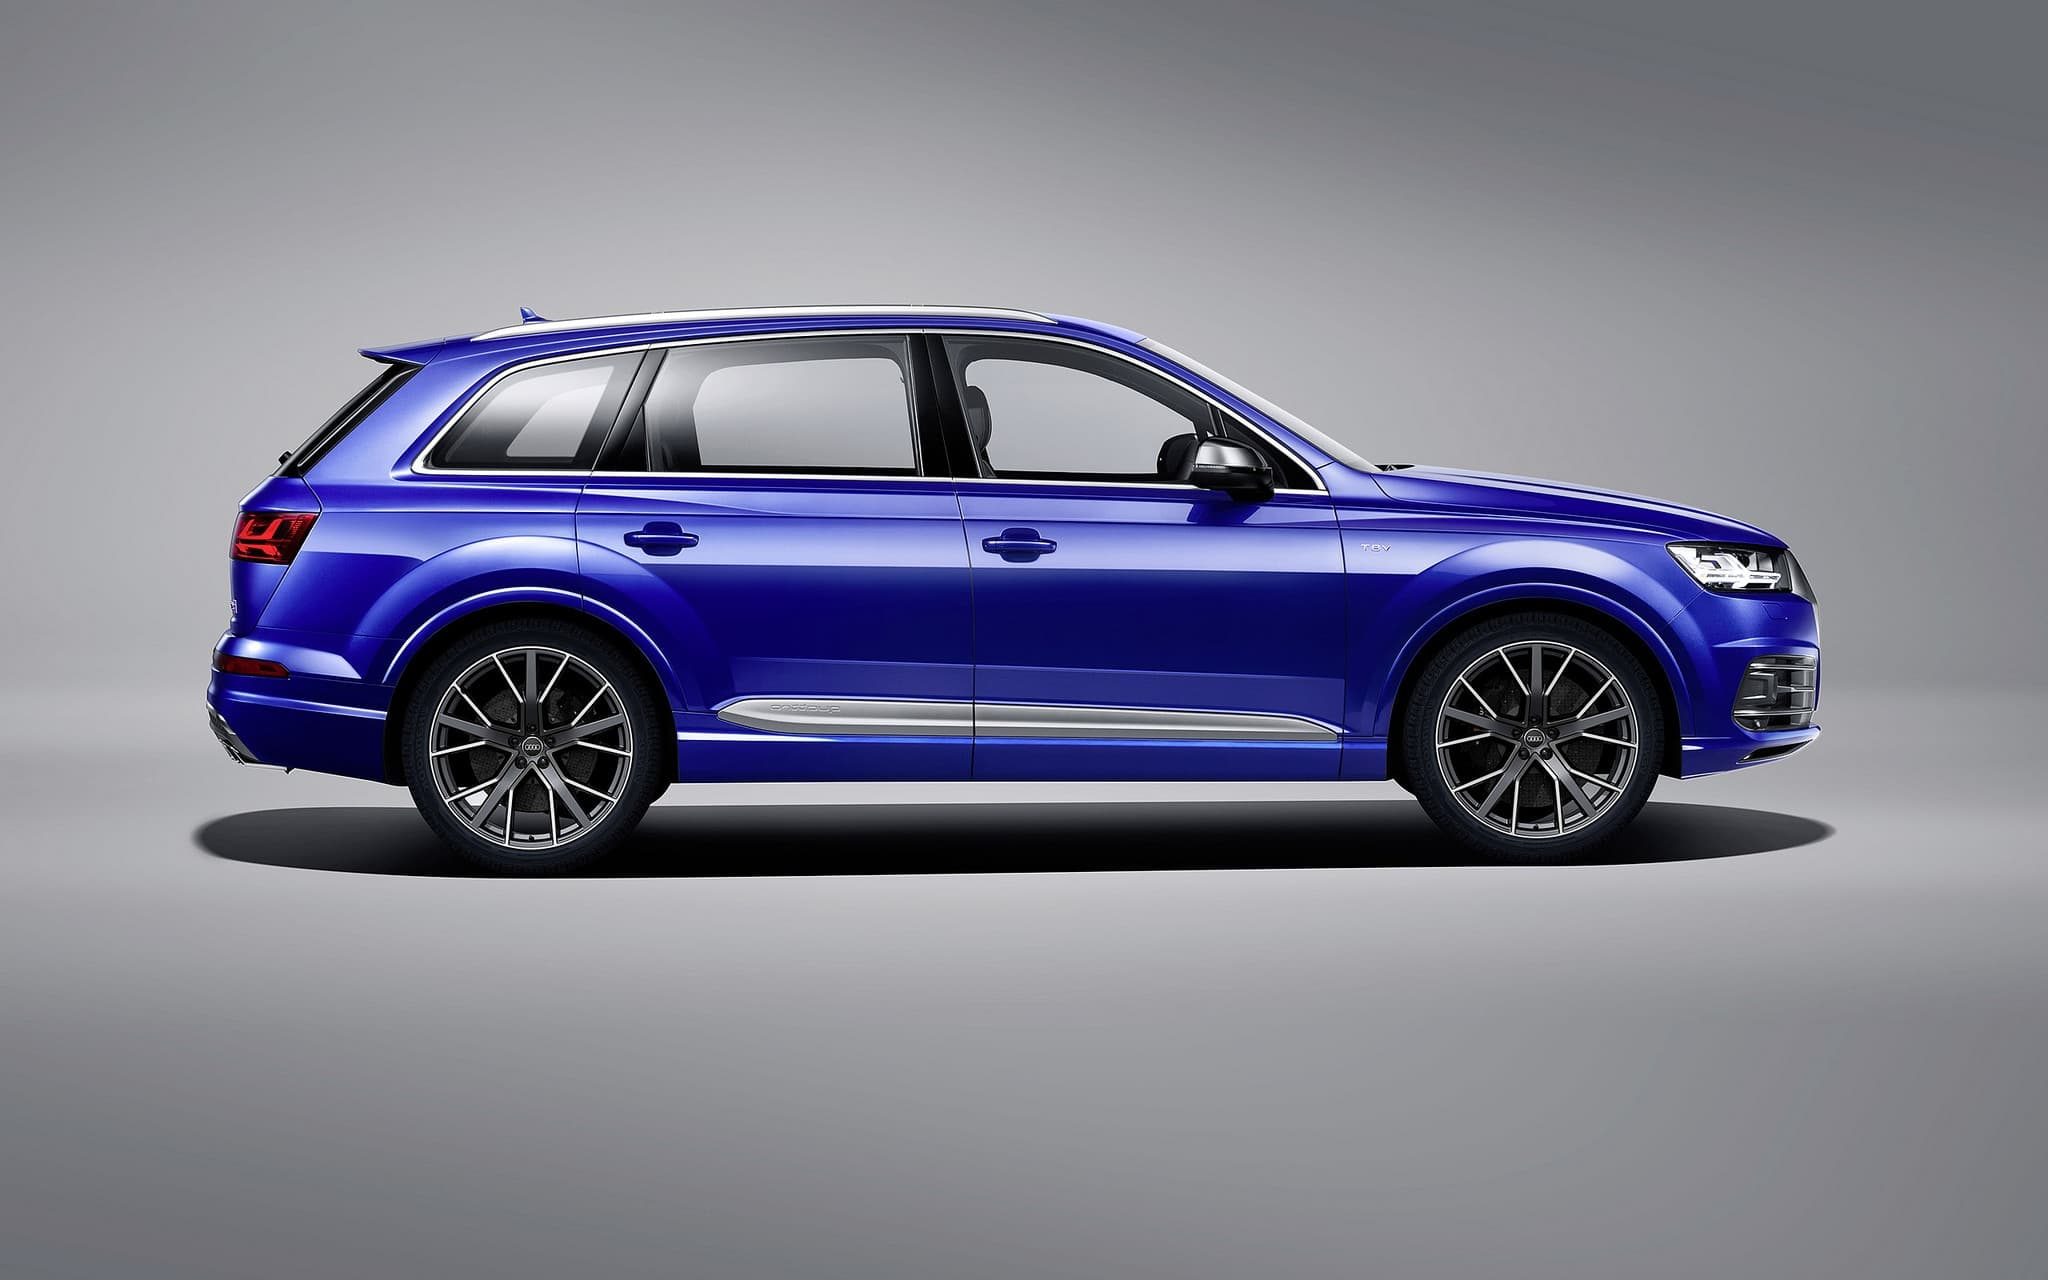 Hd Car Games Wallpapers 2016 Audi Sq7 Wallpapers Hd High Quality